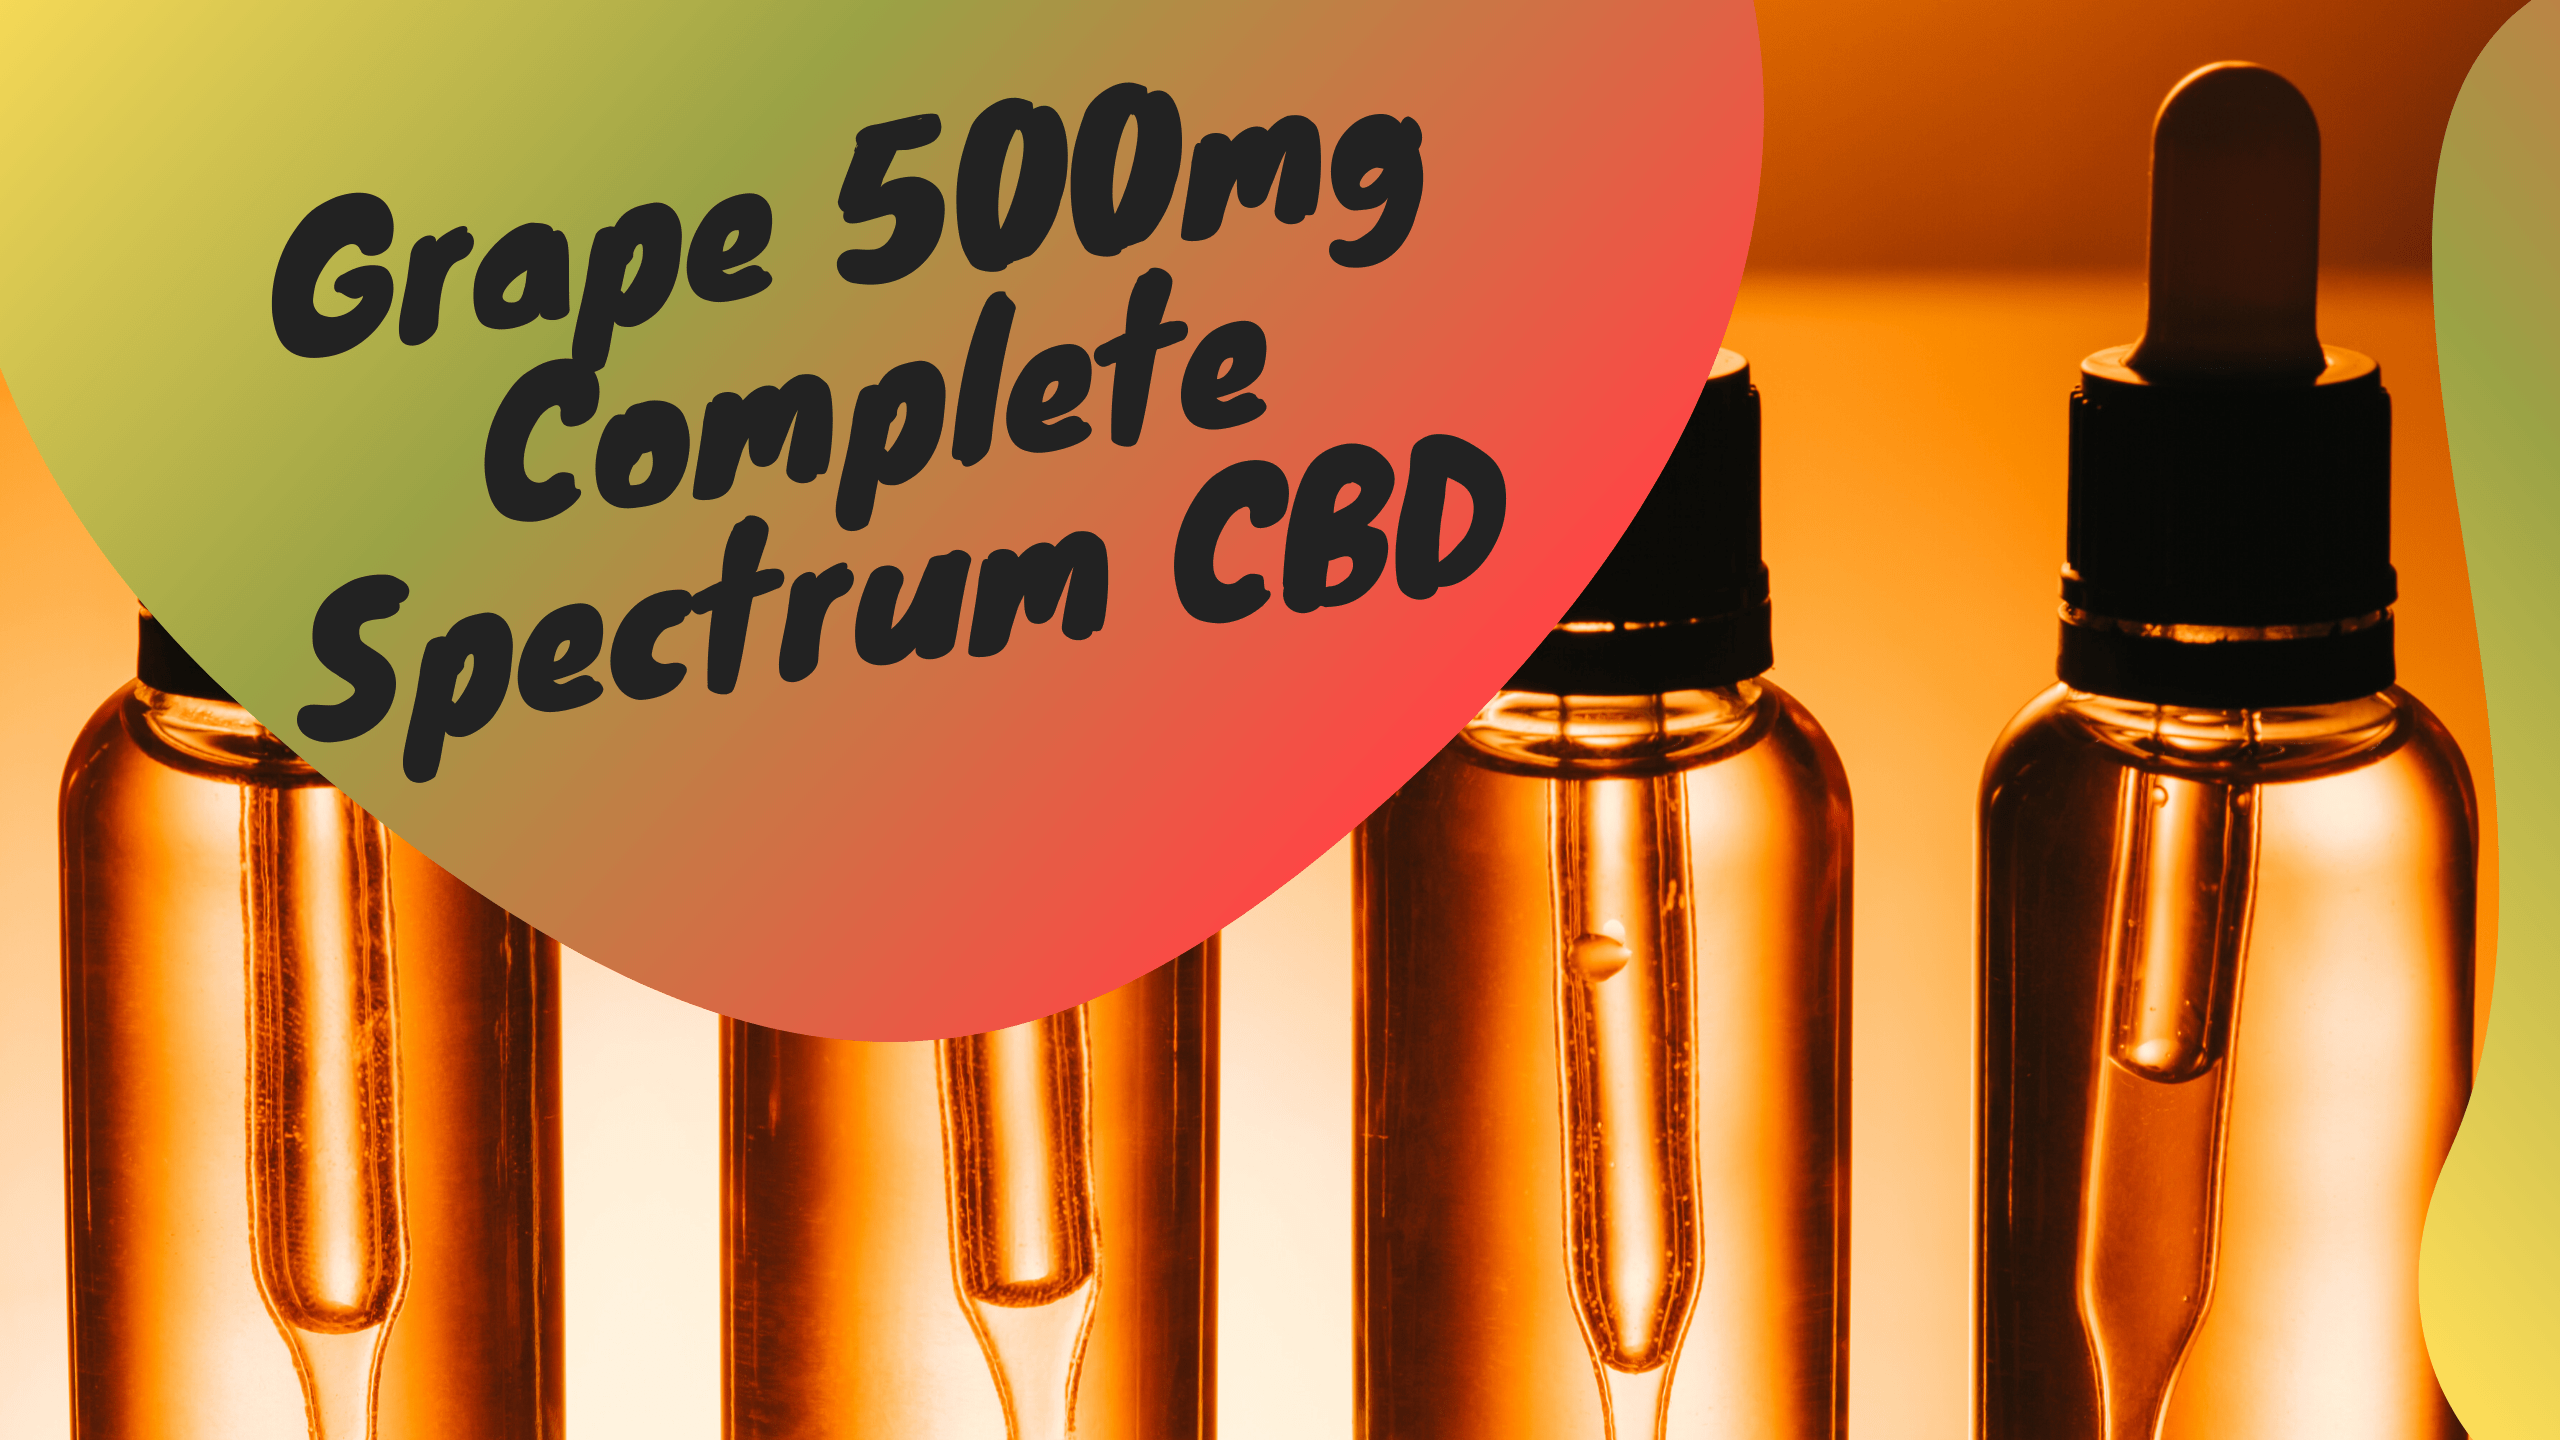 Organic and lab tested Complete Spectrum CBD